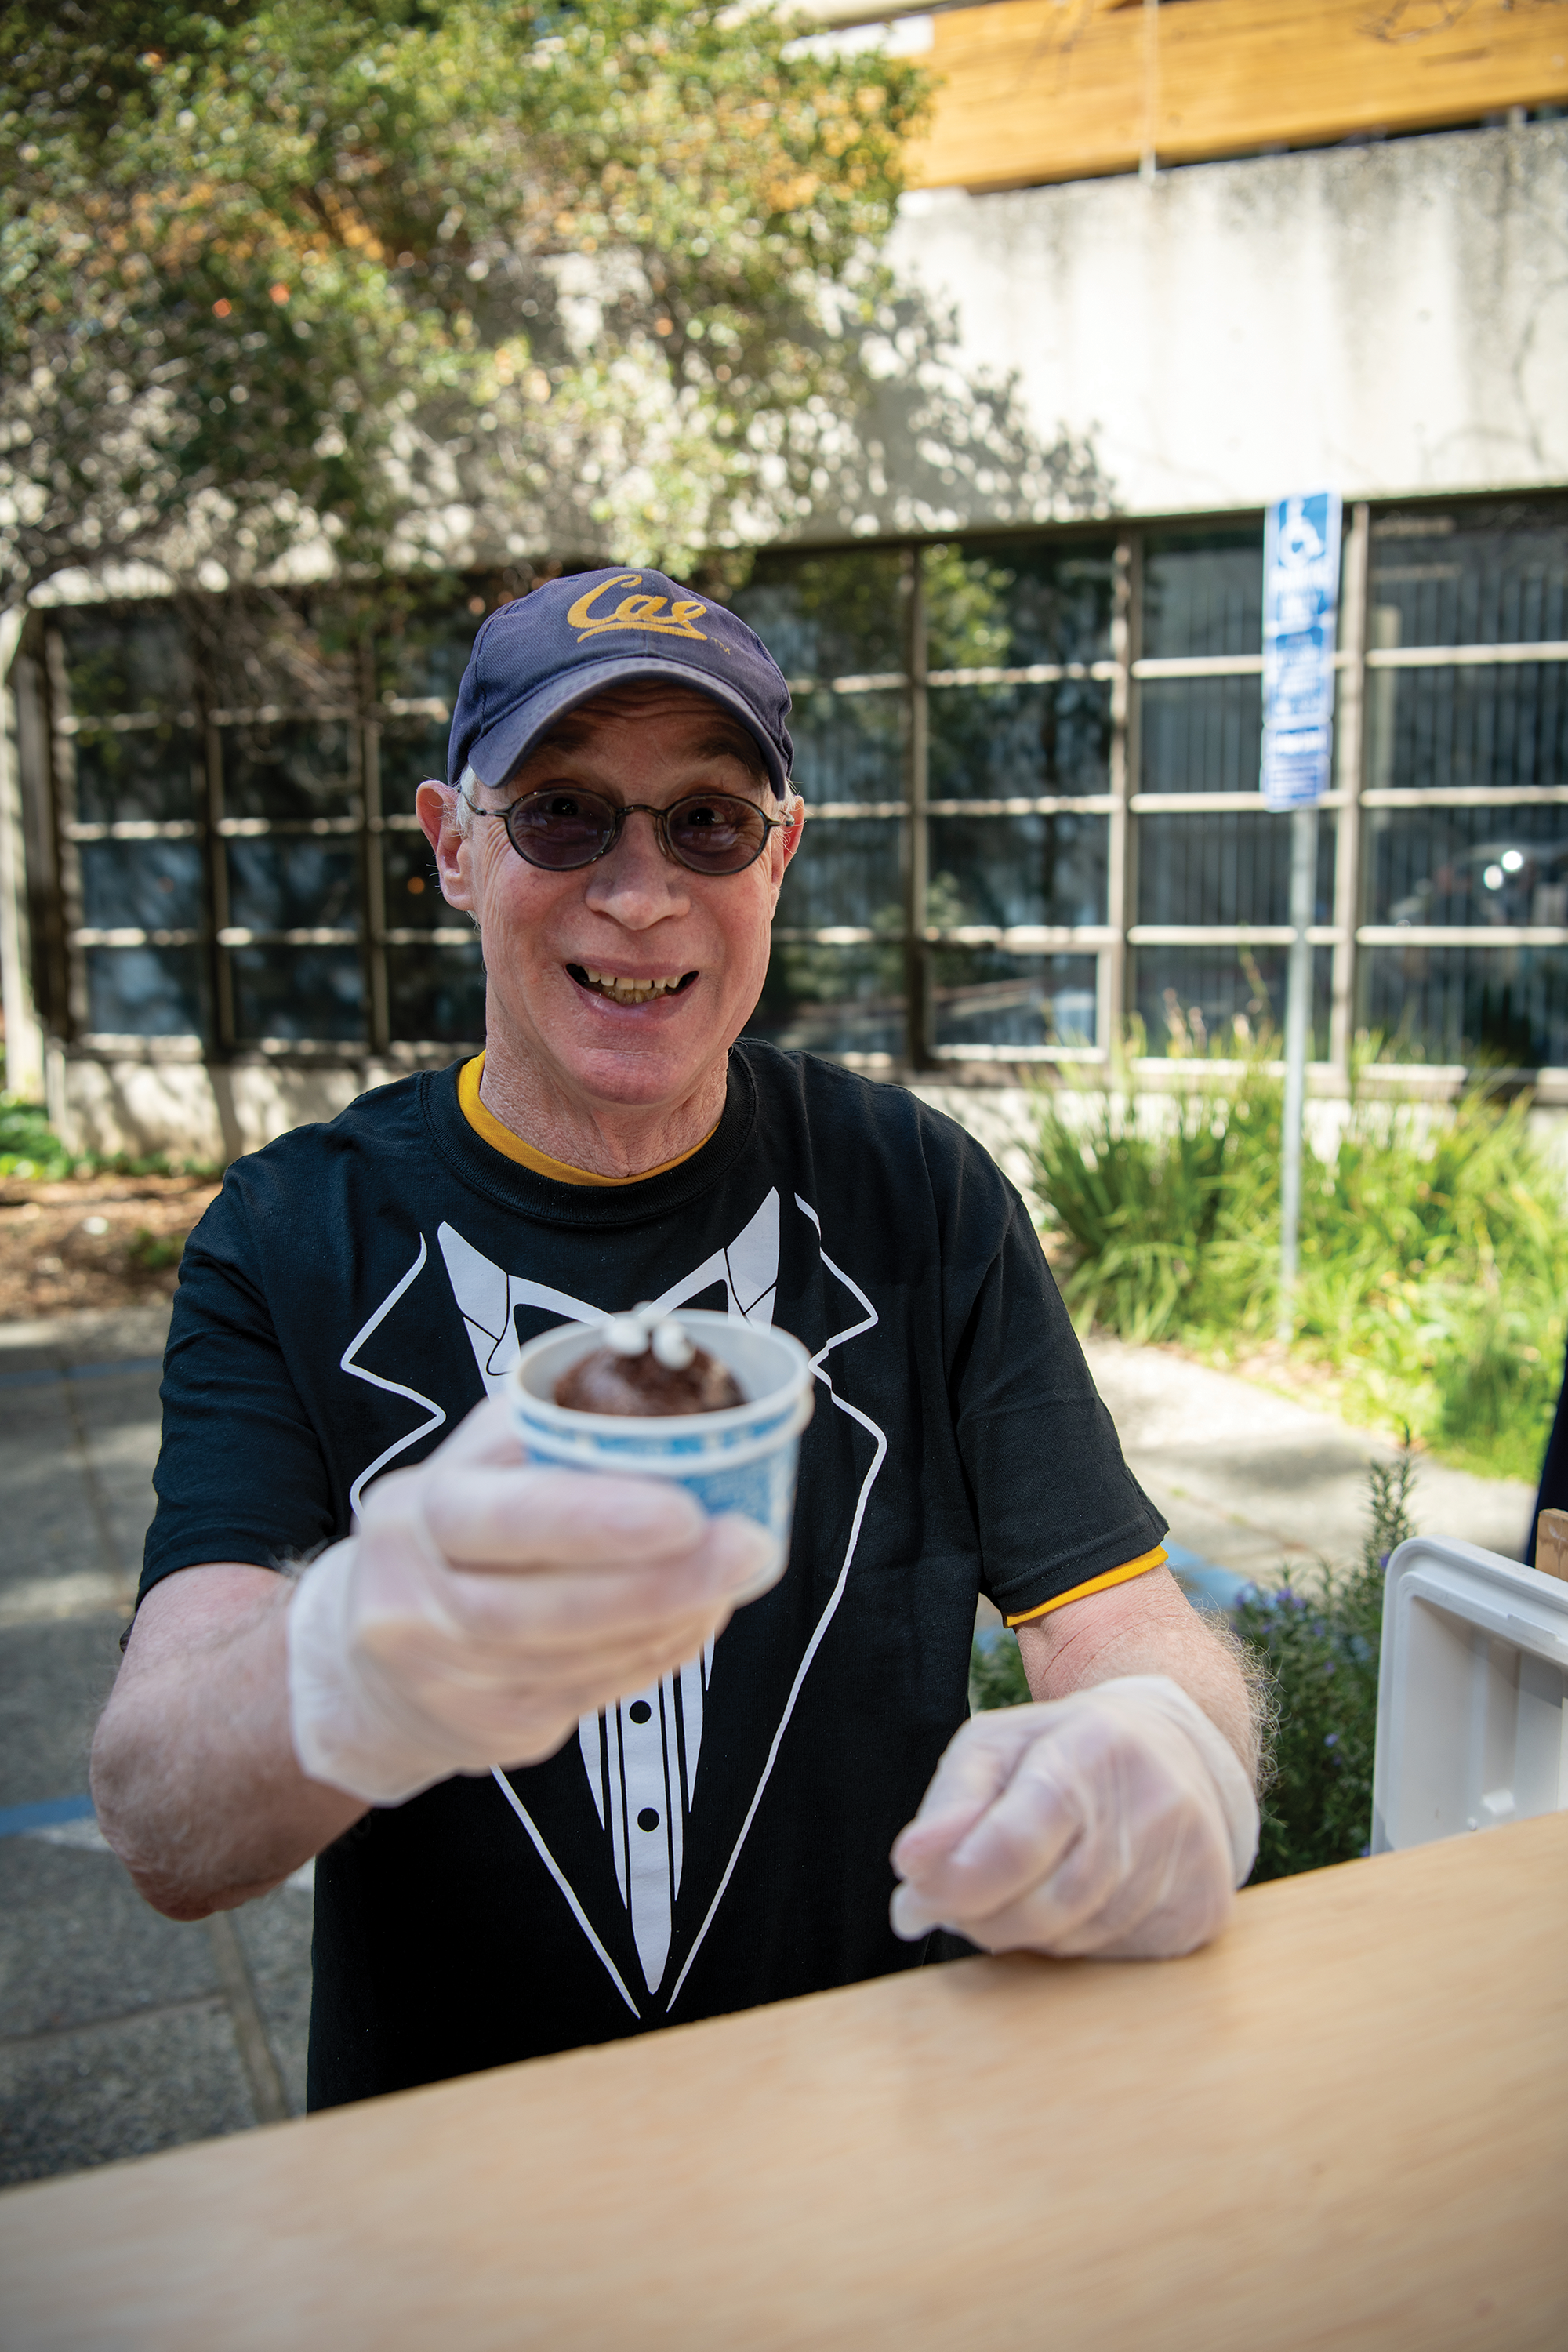 Michael G. Harris doles out ice cream with a smile.